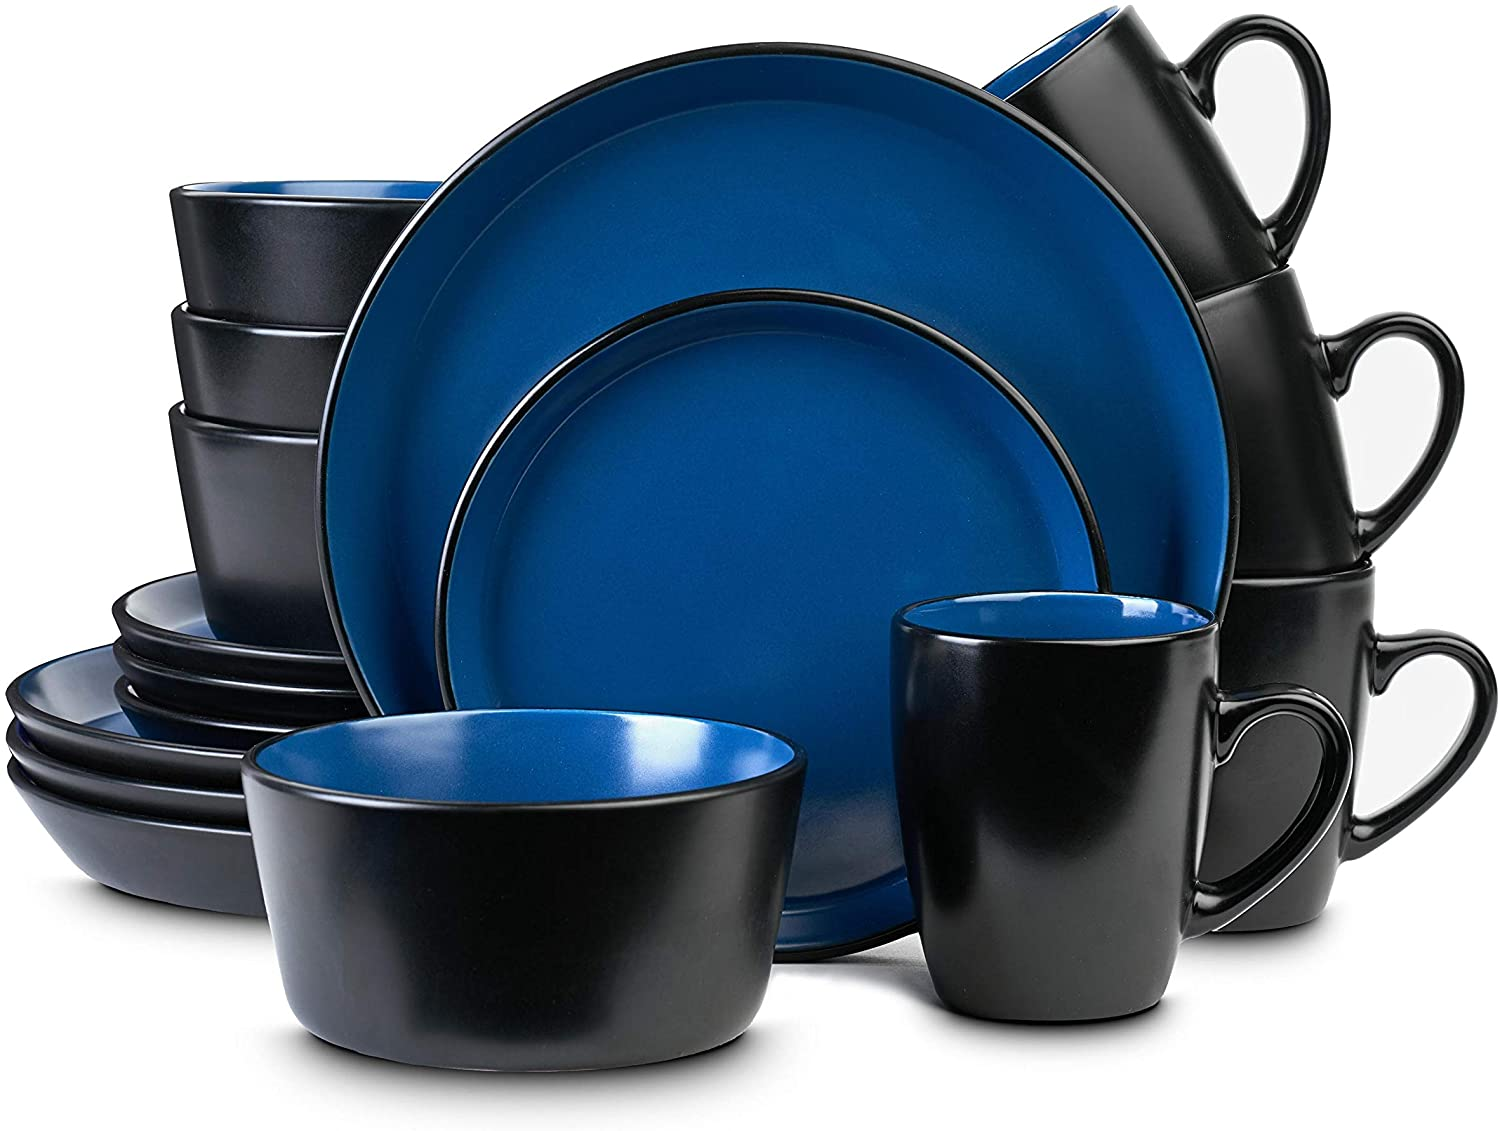 Stone Selling and selling Lain Stoneware lowest price Dinnerware Set Service For Bla Blue and 4